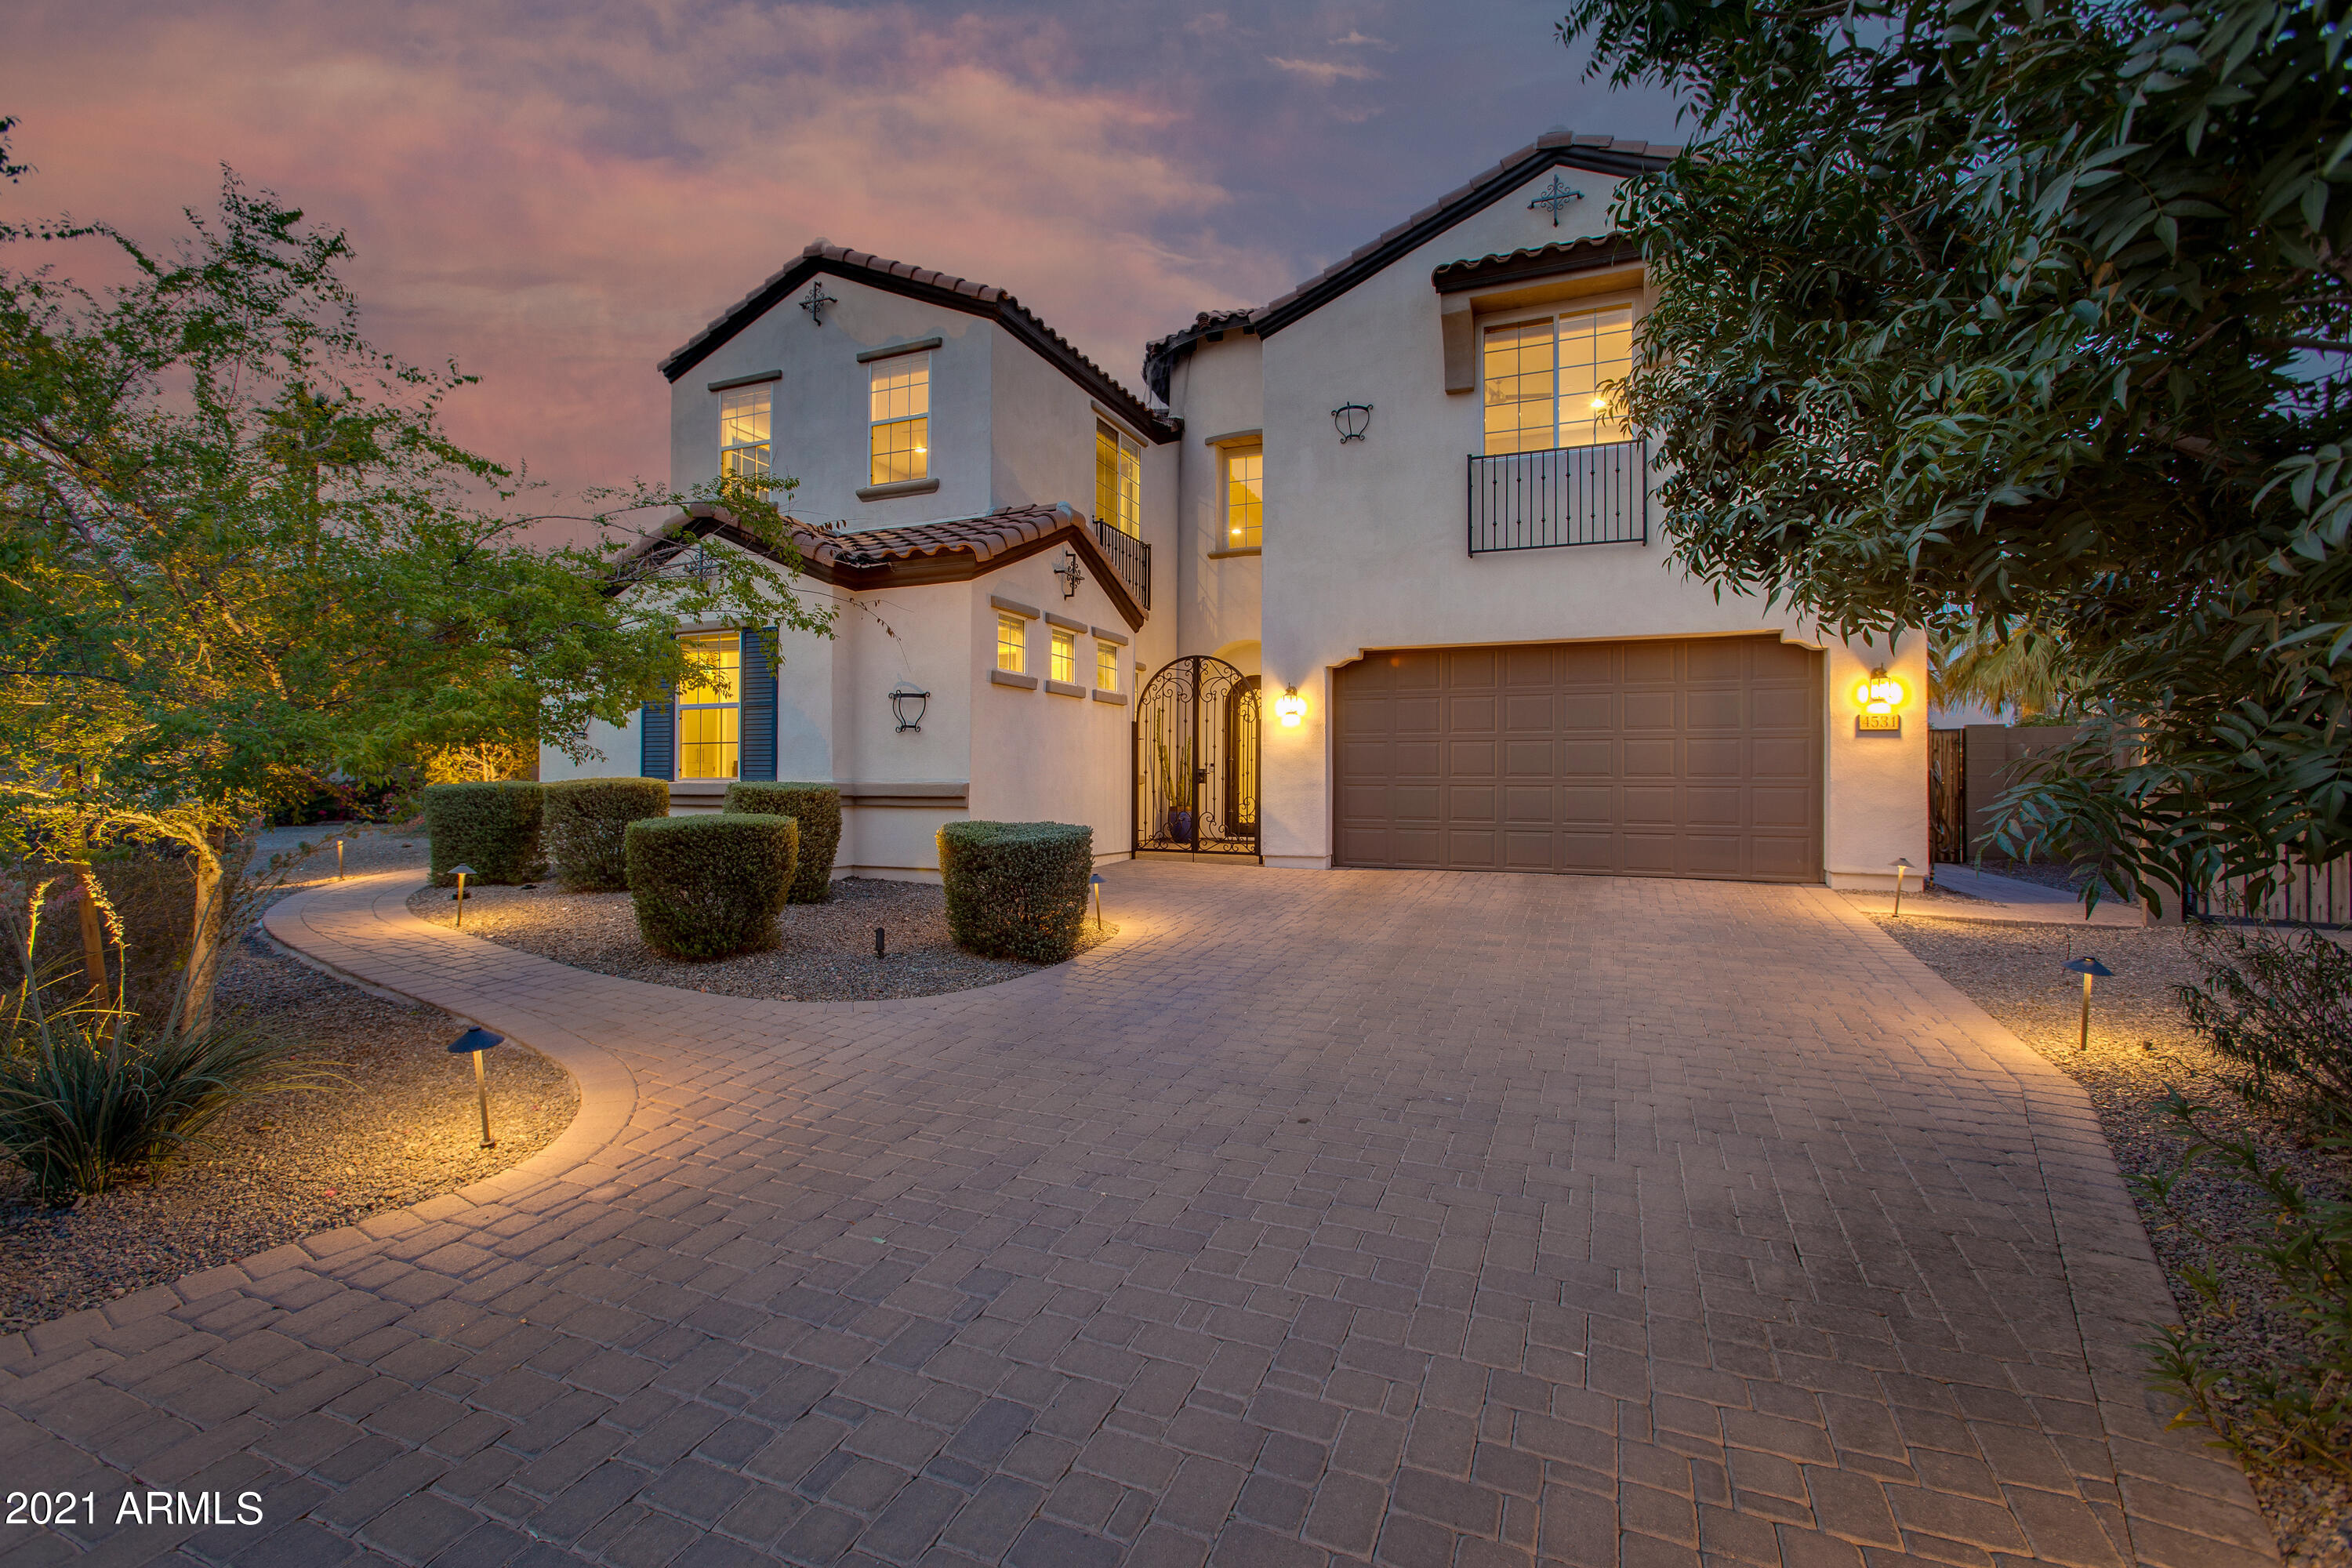 Built in 2015, this immaculate home is nestled between the Biltmore and Arcadia Lite, in the gated community of Madison Vistas. This modern, two-story dream boasts quality finishes at every turn and the open concept is perfect for entertaining guests. The gourmet kitchen features beautiful top-tier appliances, custom cabinetry, and a stunning center island with breakfast bar. First floor includes a 2 room guest suite with kitchenette. On the second floor, you'll find a spacious den/loft, master retreat fit for royalty, and 3 more en-suite bedrooms. The backyard oasis is accessed through a retractable patio wall in the living room and offers a brand new salt-water pool, and a spacious covered patio. With a spacious 2.5-car garage to safely store your cars and fun toys, this home has it all!